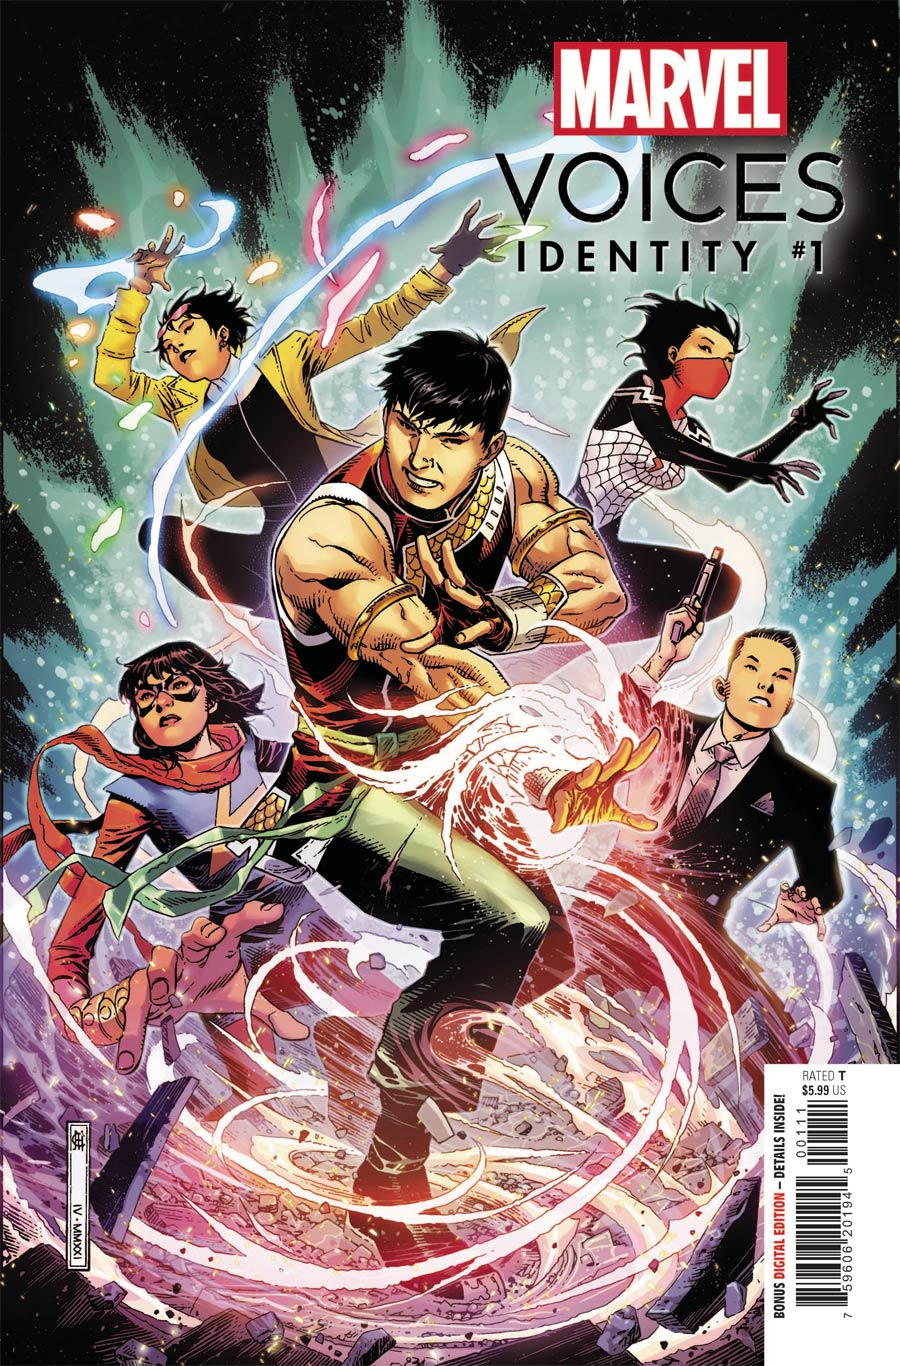 Marvels Voices Identity #1 (One Shot) Cover A Regular Jim Cheung Cover